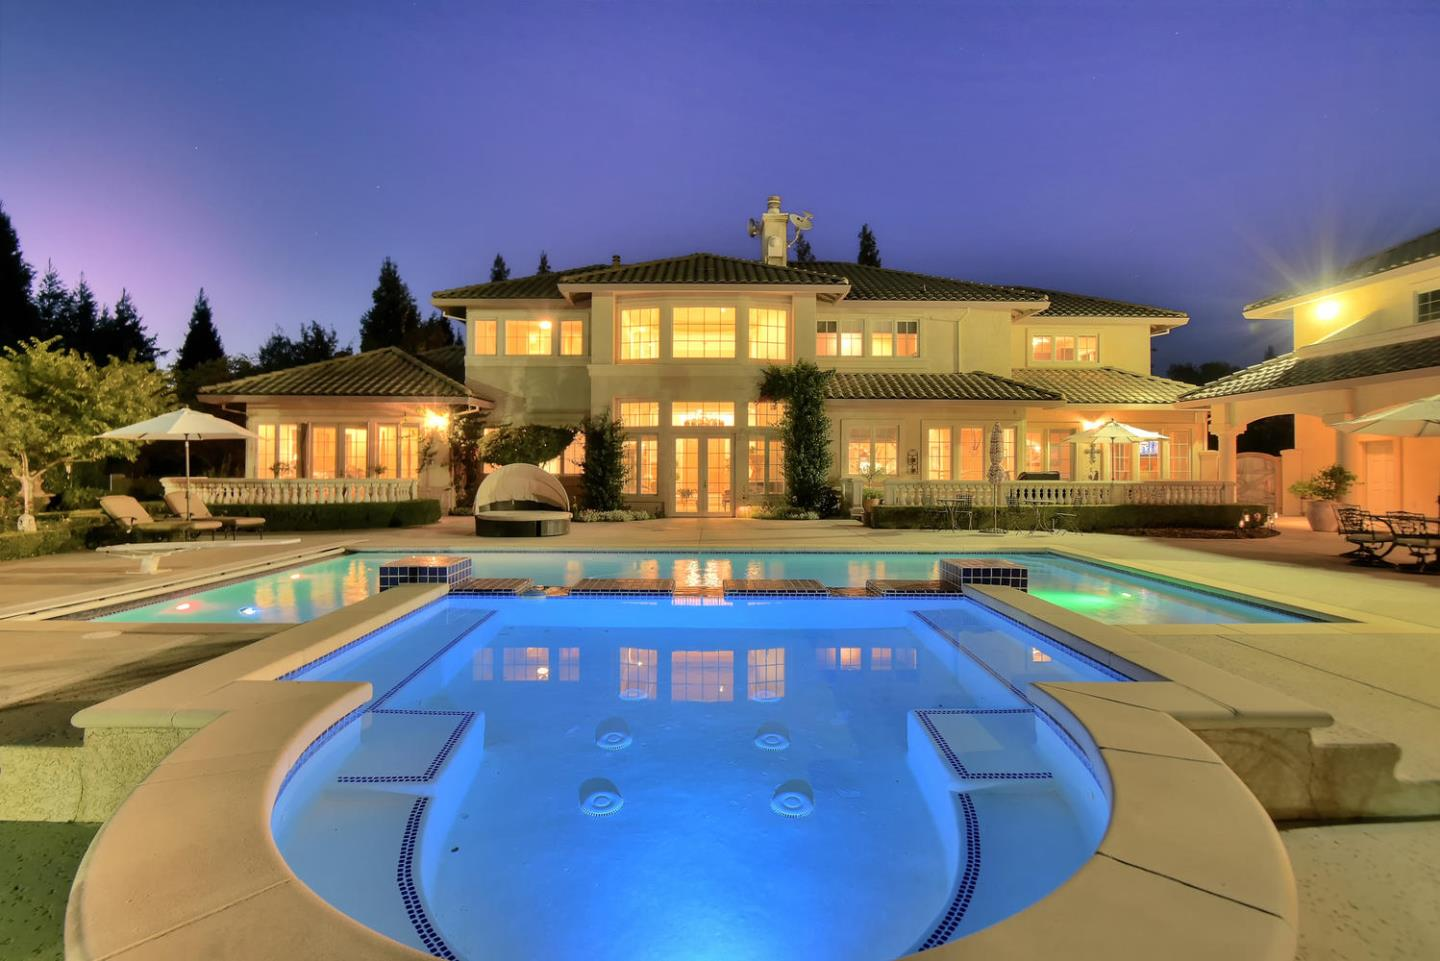 4600 Meritage Court, Gilroy, CA 95020 $4,200,000 www.pacificwide.com ...